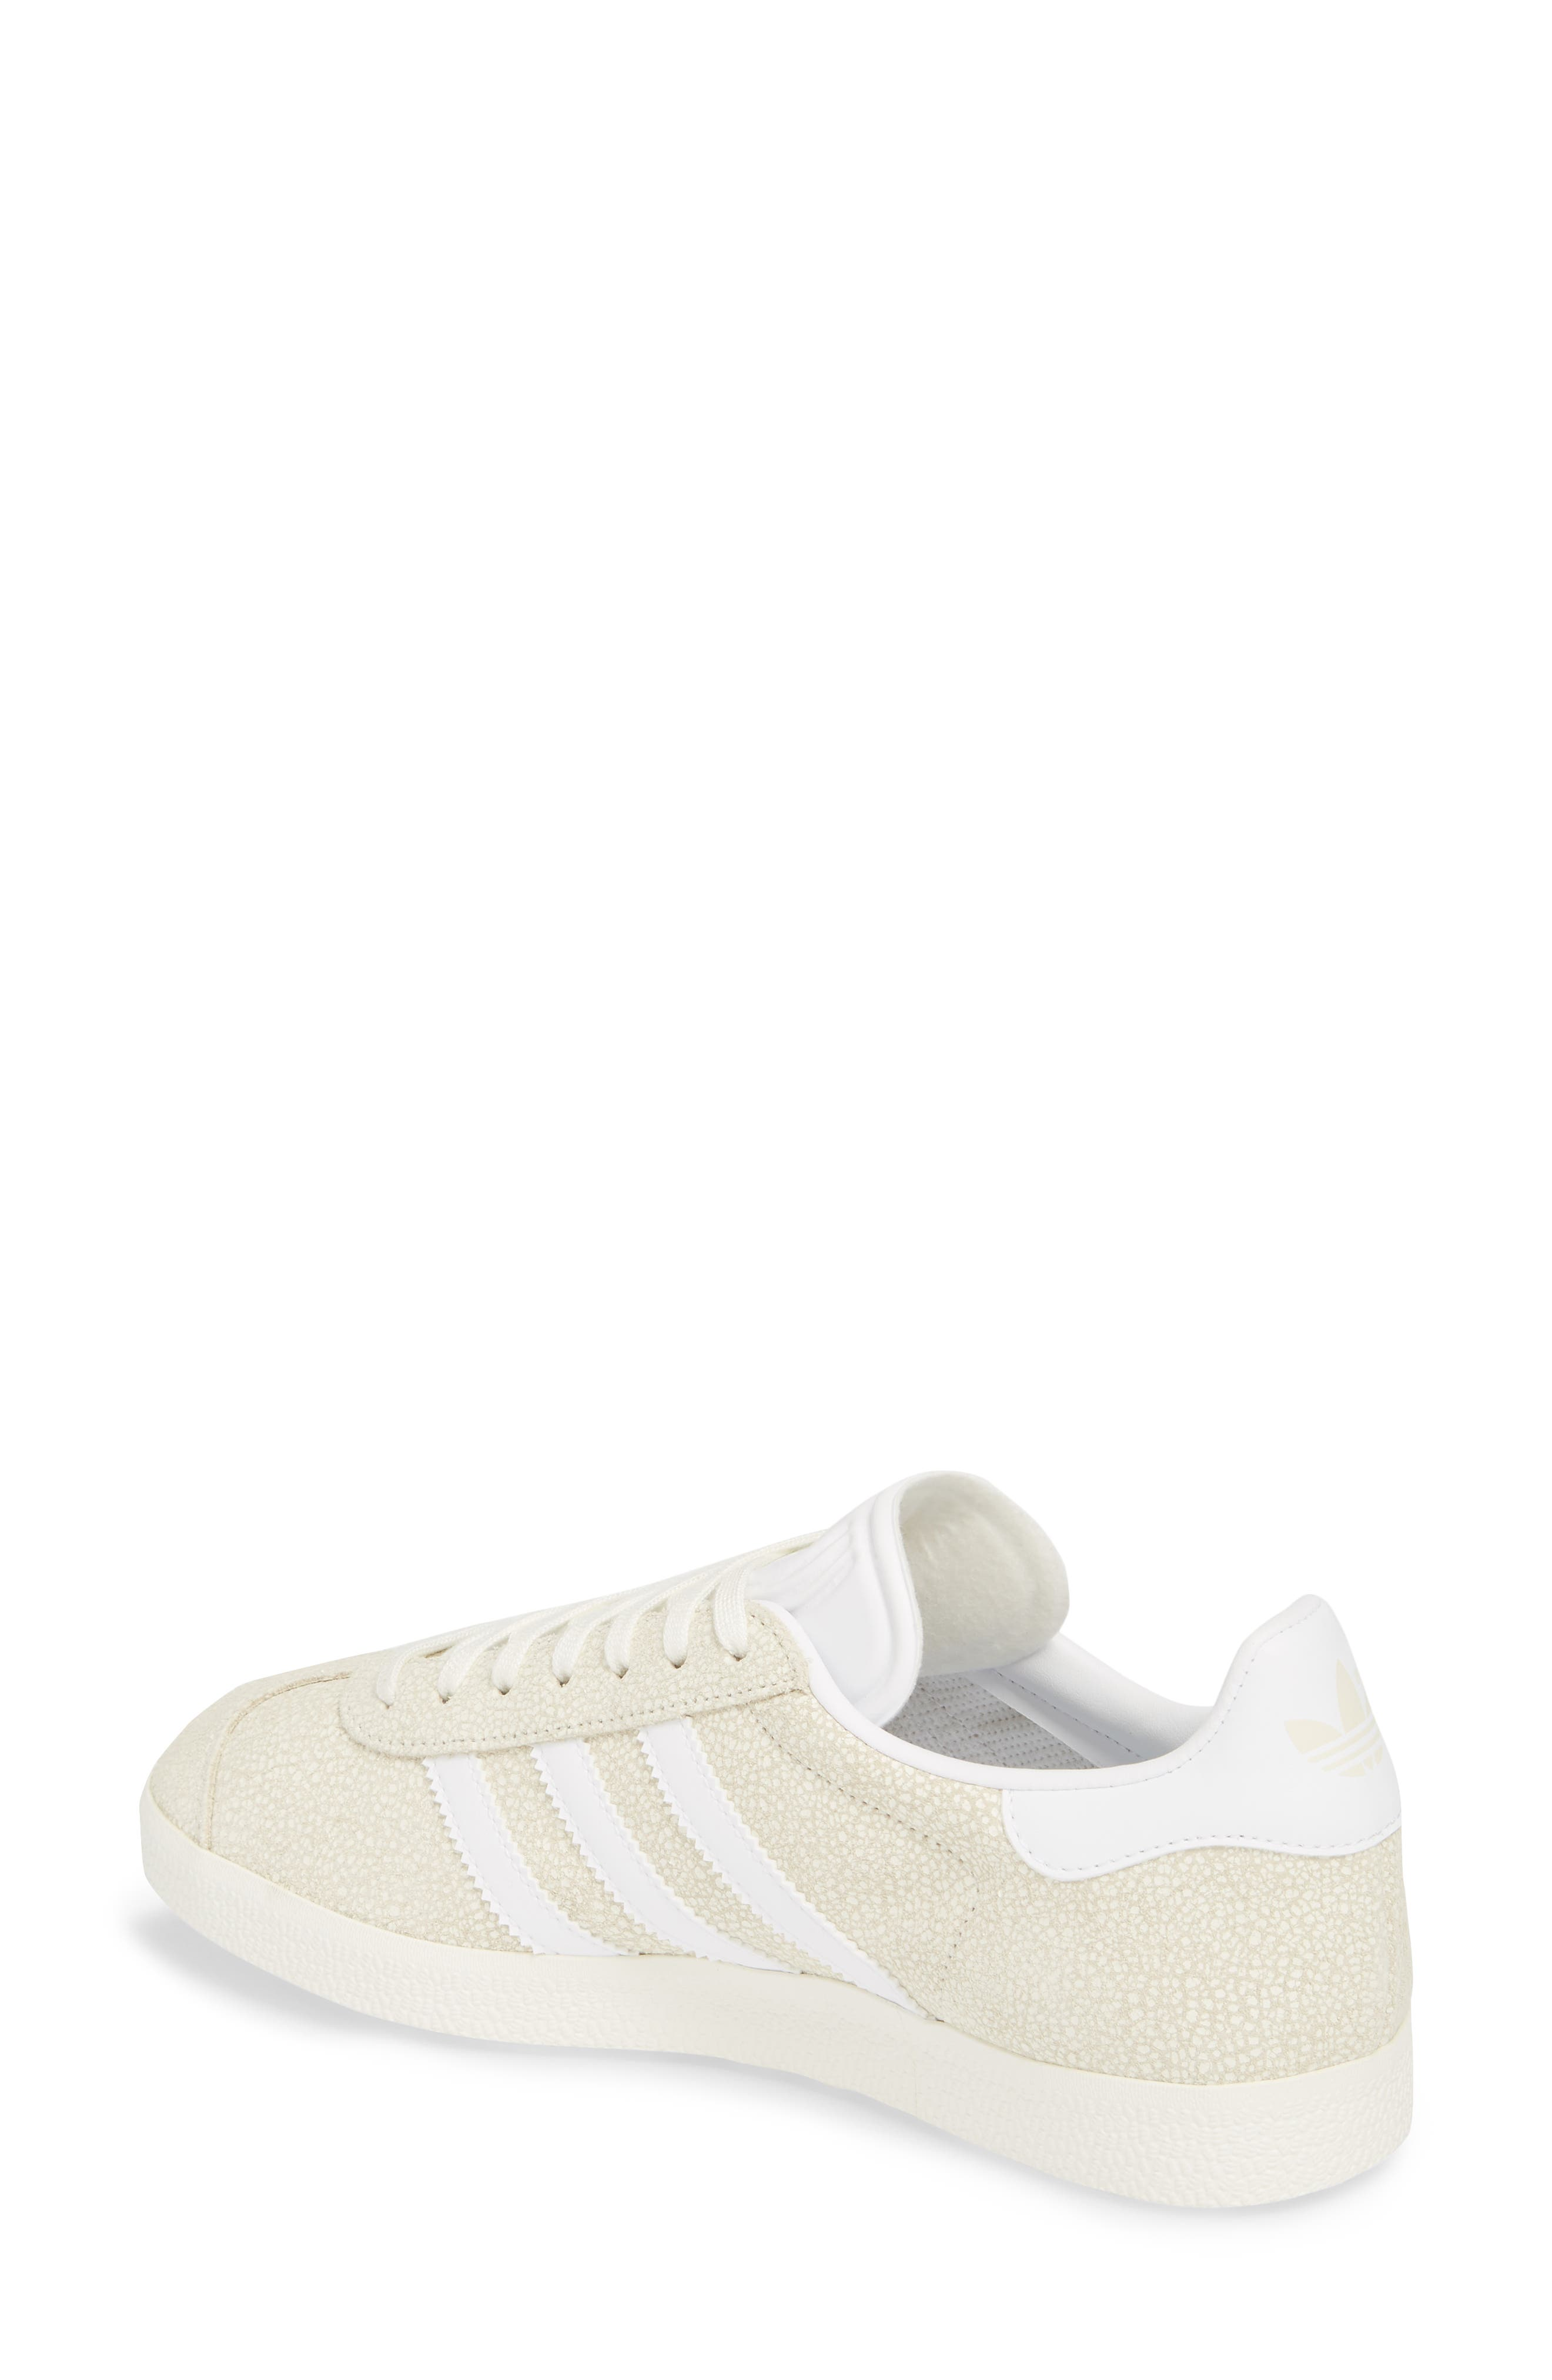 Gazelle Sneaker,                             Alternate thumbnail 2, color,                             Off White/ White/ Off White